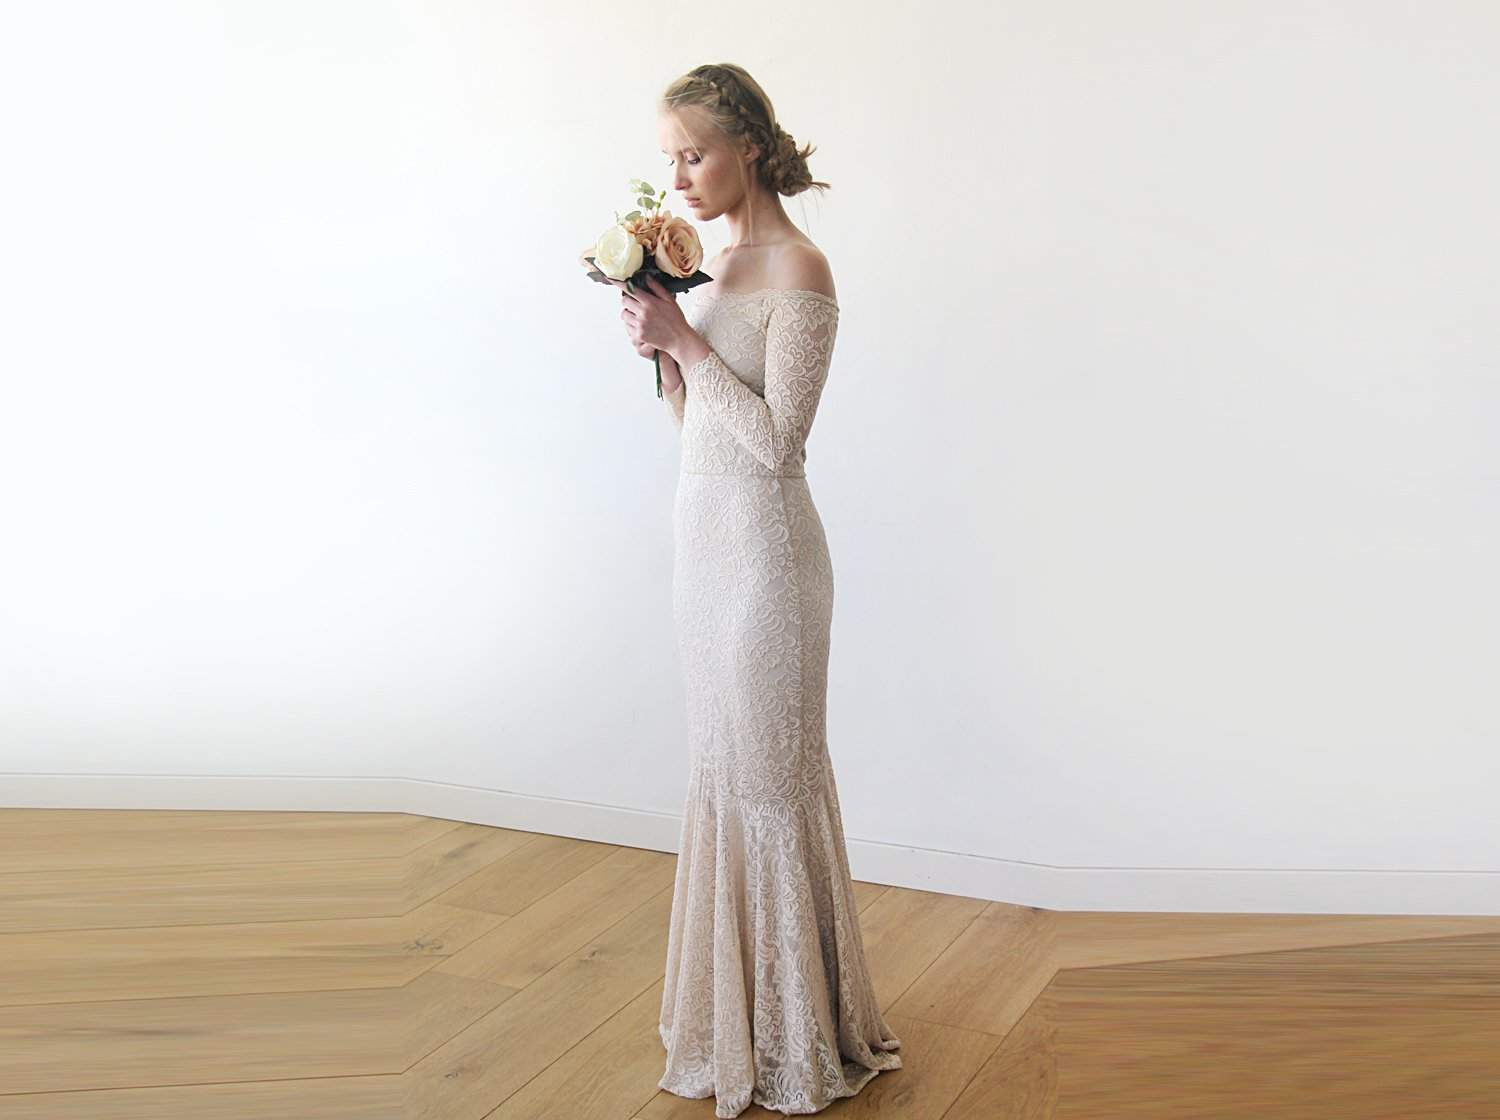 Champagne Lace Off-Shoulders Dress, Mermaid Lace Dress, Mermaid Wedding Dress in Champagne 1214